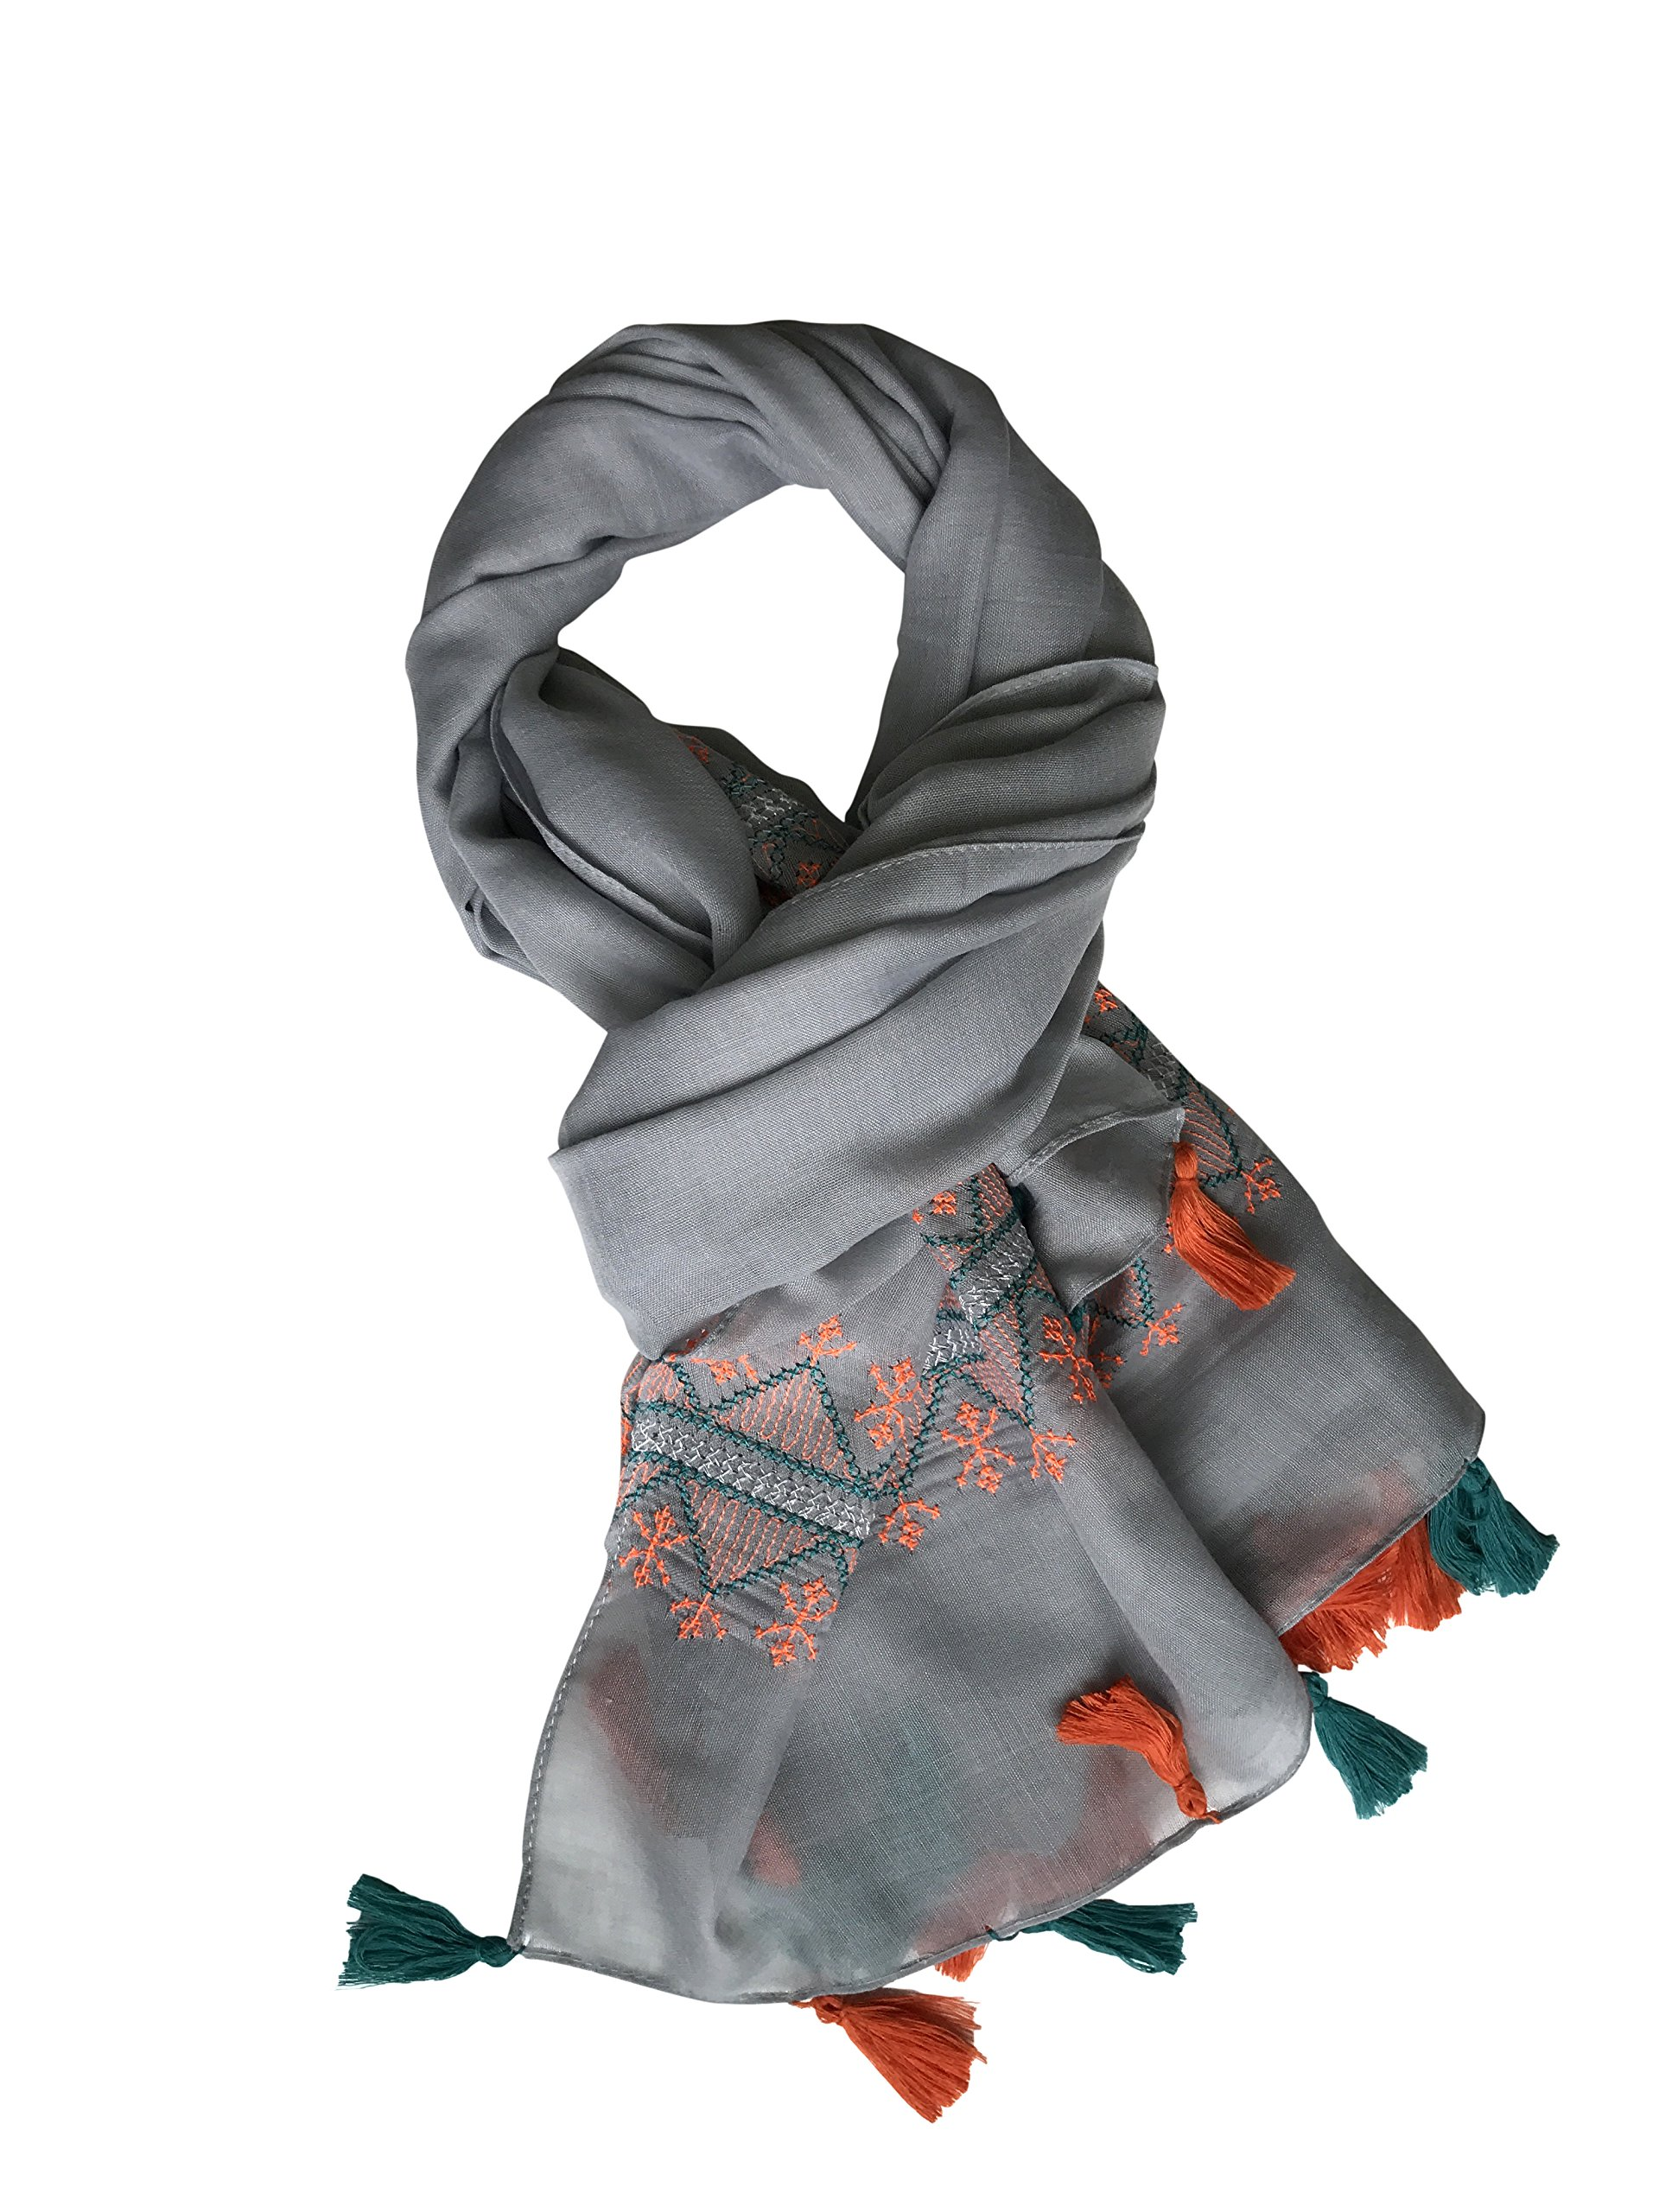 Lightweight Women Embroidered Fashion Scarf Shawl Wrap with Tassels for Spring and Summer (Gray)